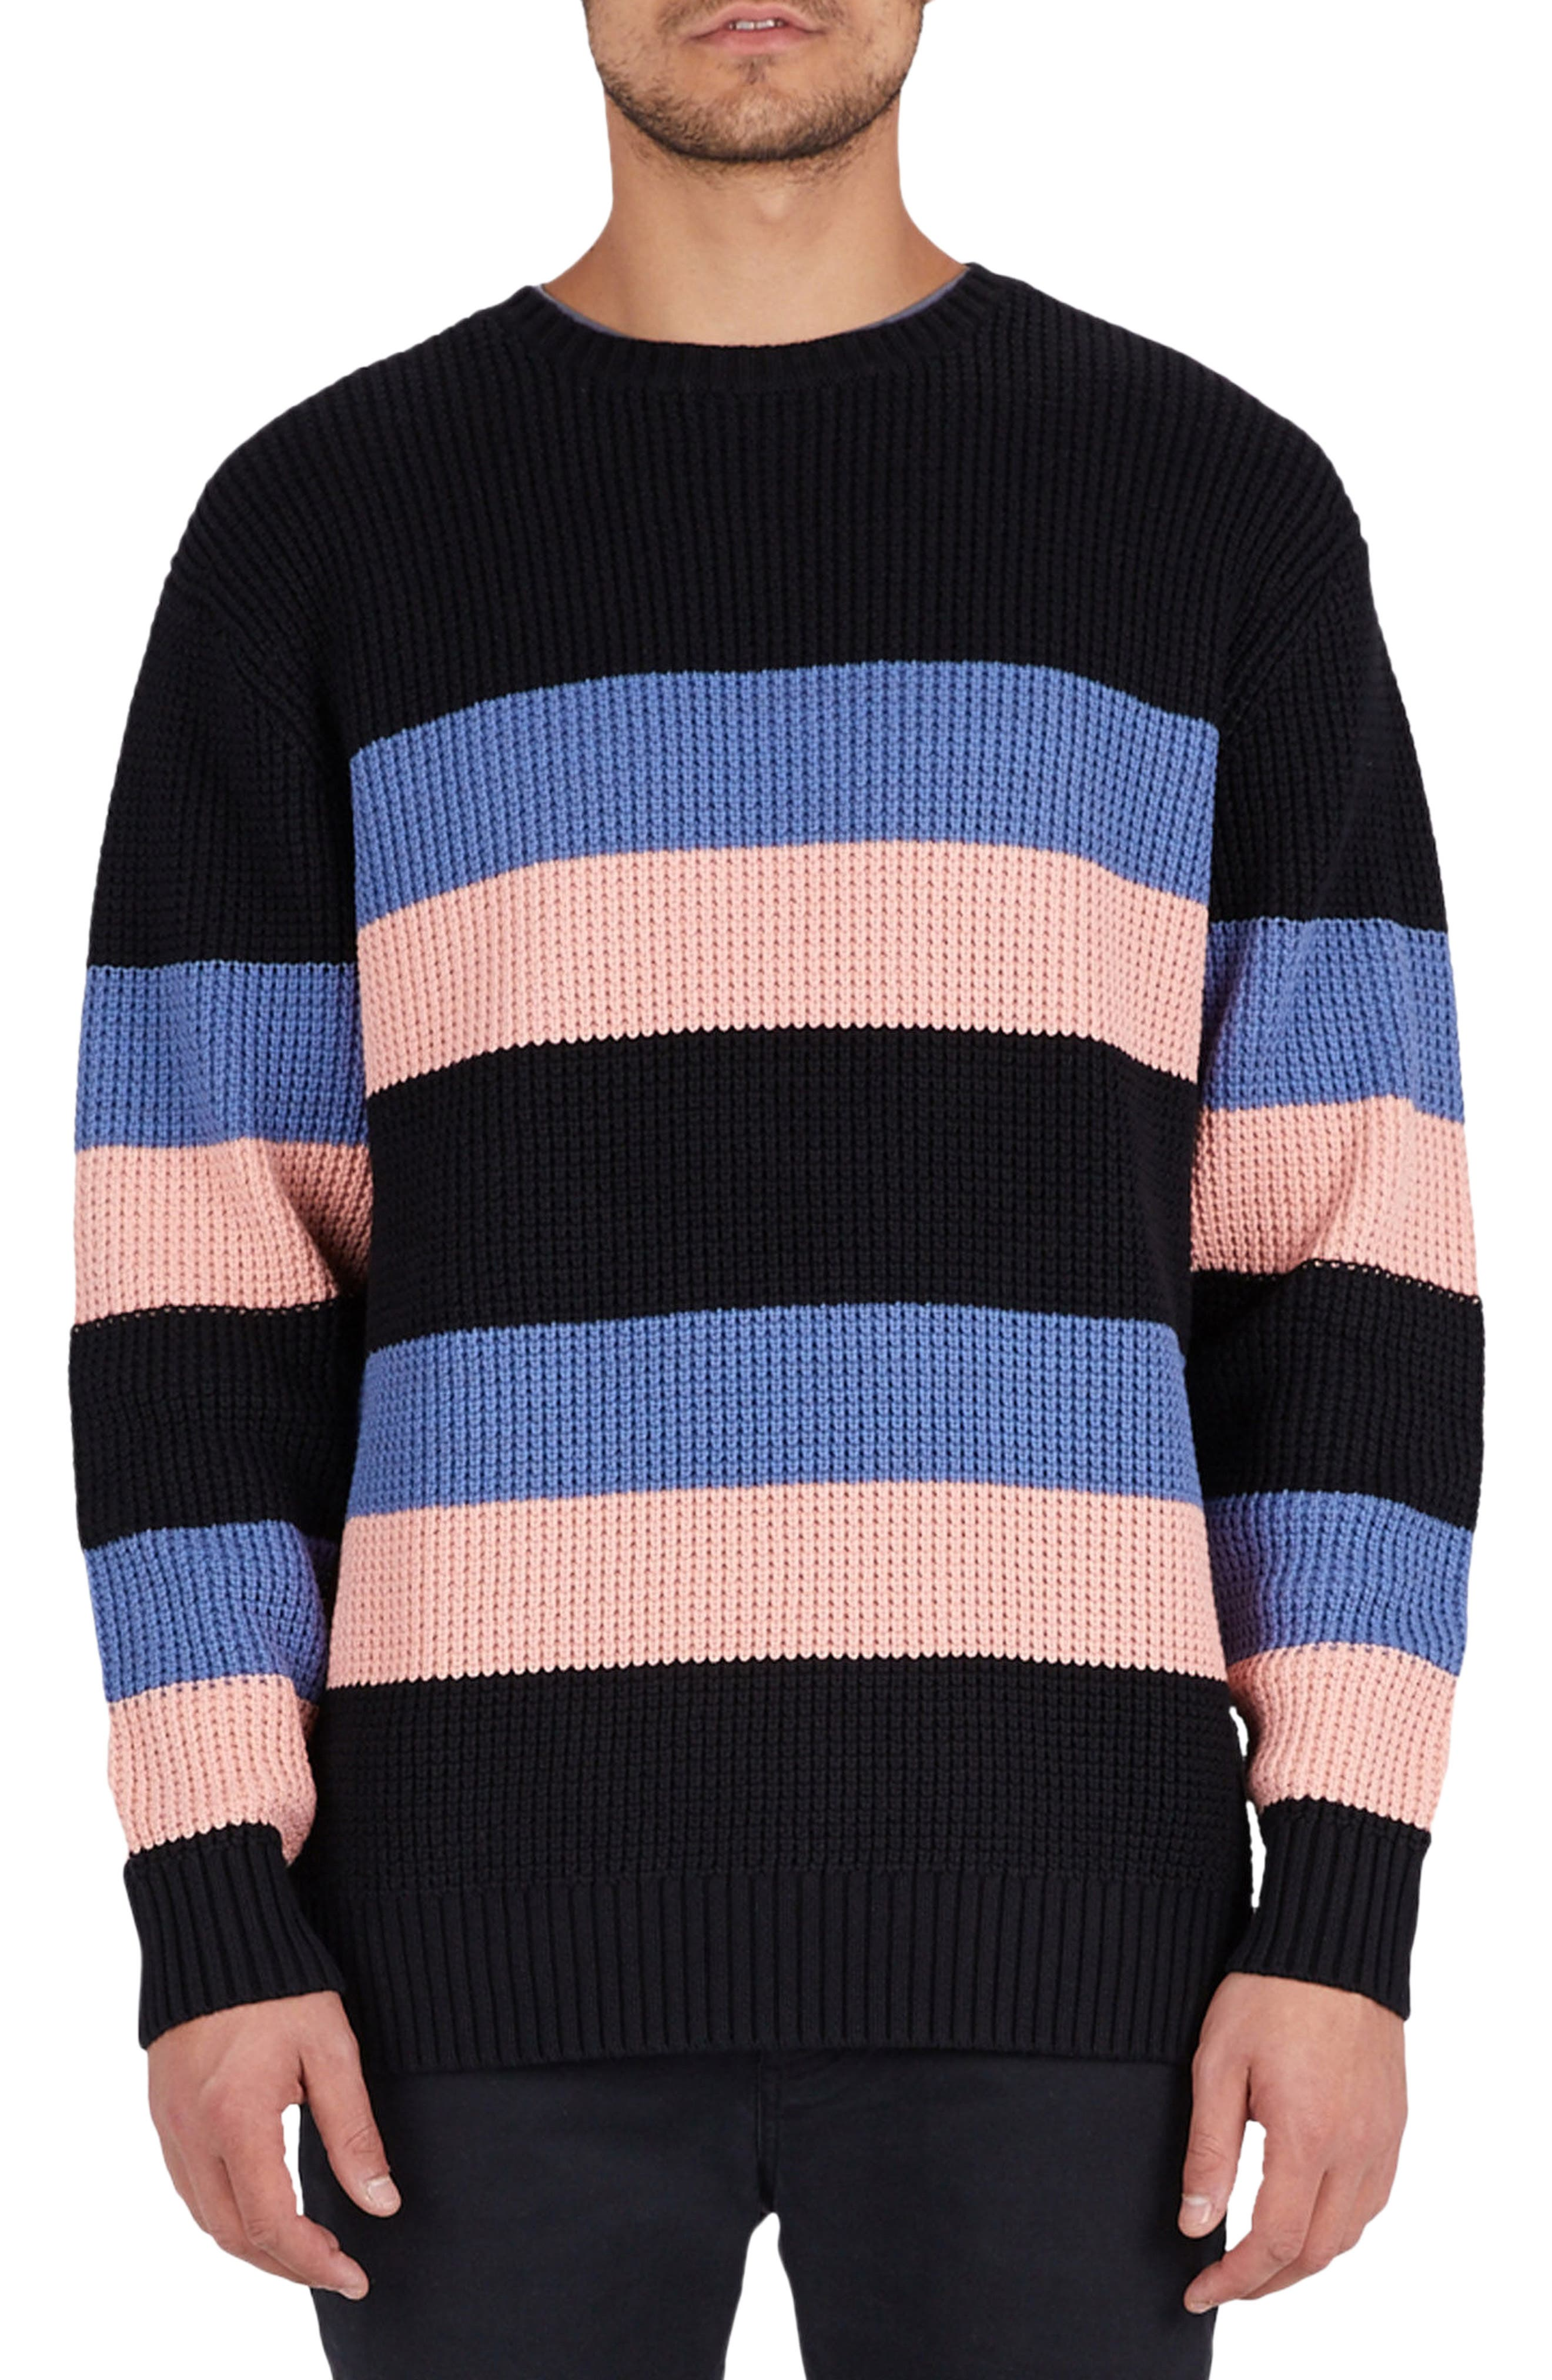 Rugby Stripe Sweater,                         Main,                         color, Black/ Pink